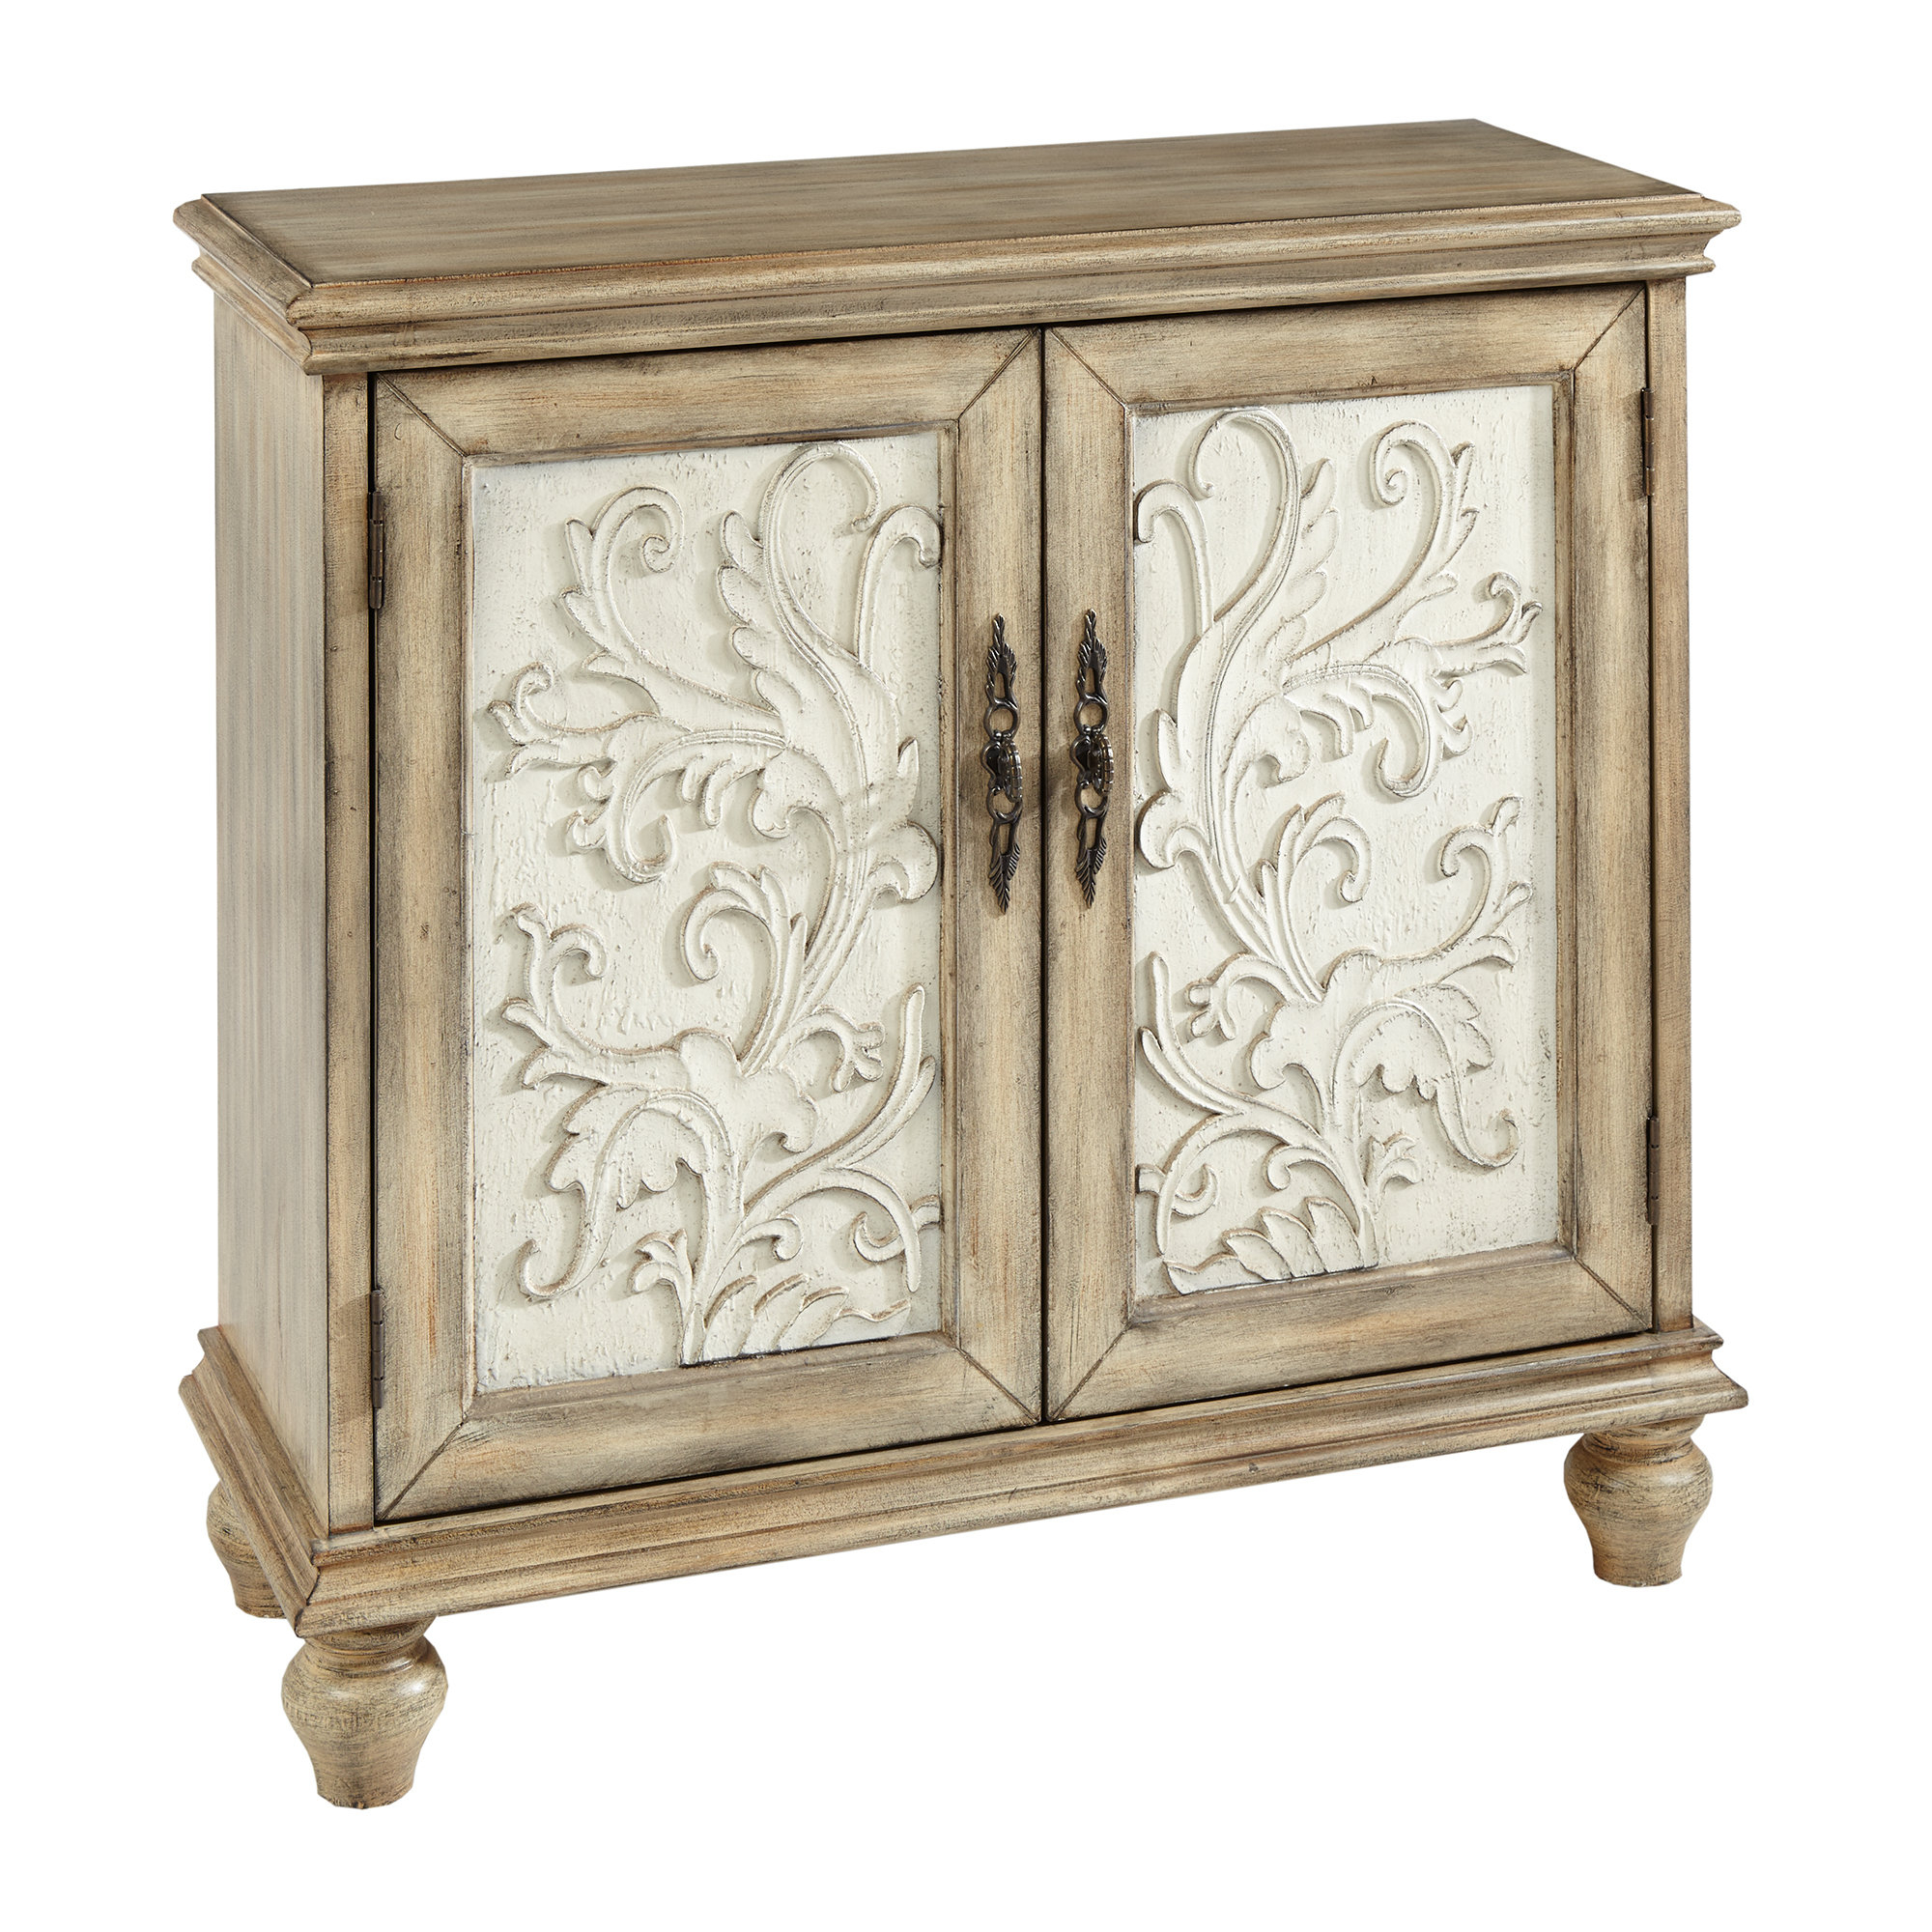 Farmhouse & Rustic Accent Chests & Cabinets | Birch Lane regarding Kara 4 Door Accent Cabinets (Image 15 of 30)